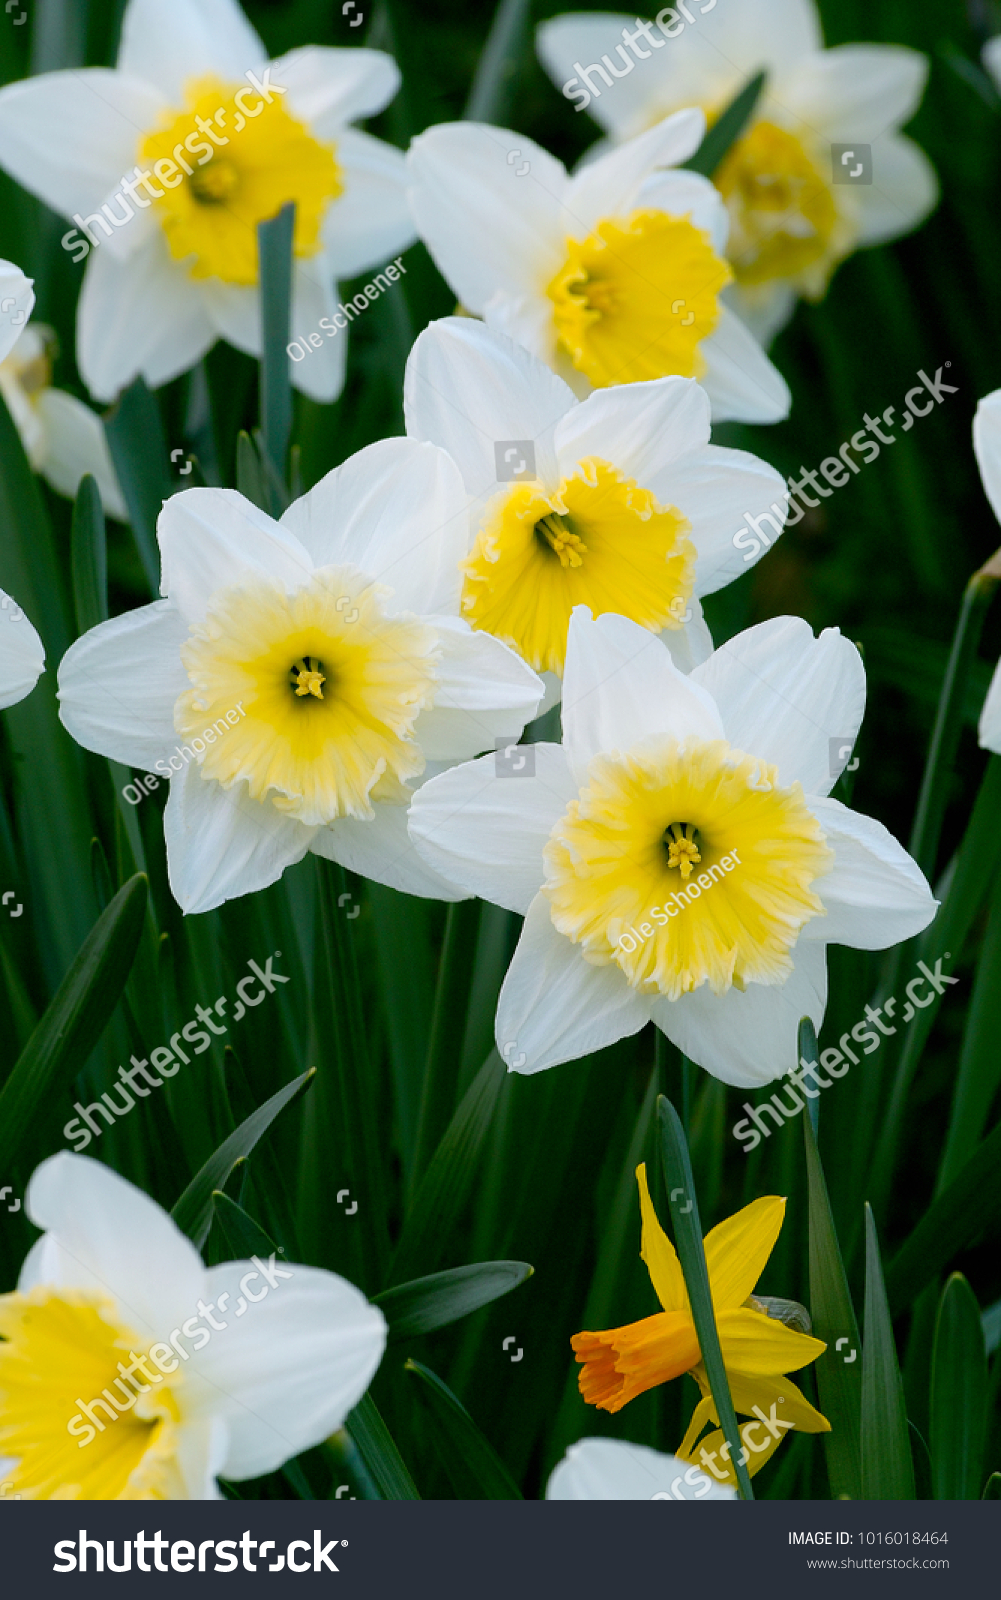 White Flowers Yellow Center Daffodils Daffadowndilly Stock Photo